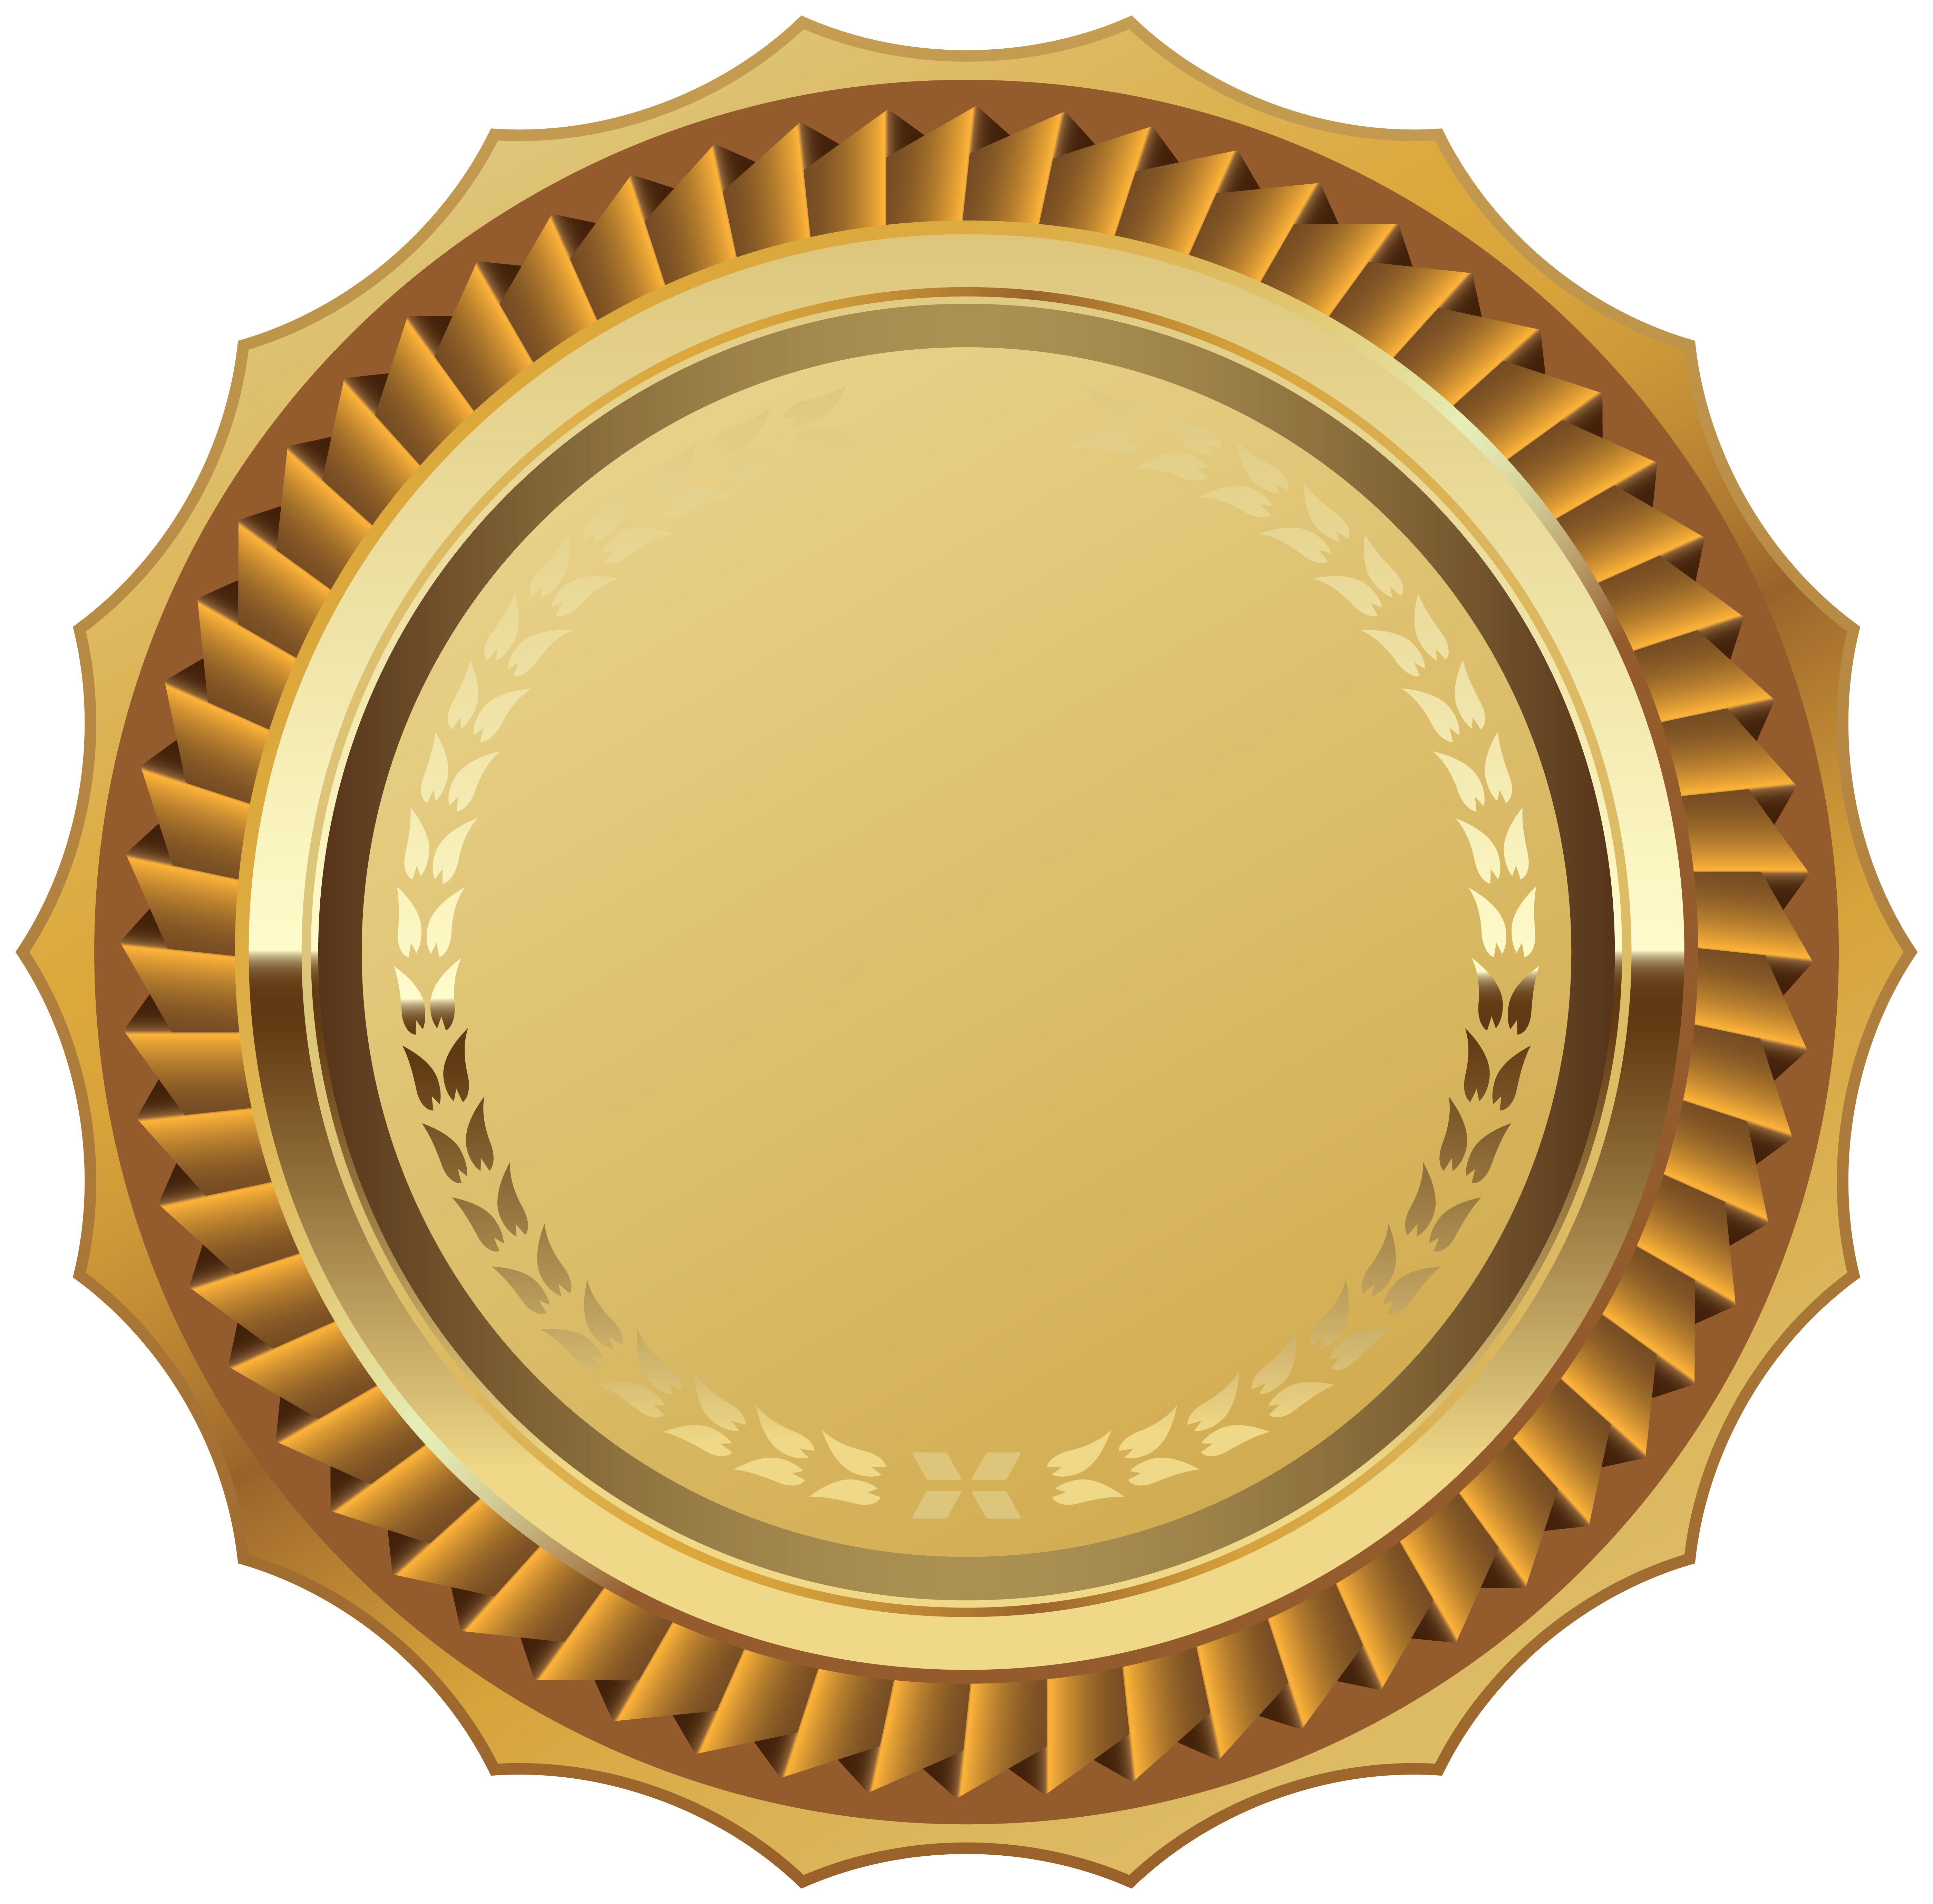 Blank seal png. Gold with ribbon clipart